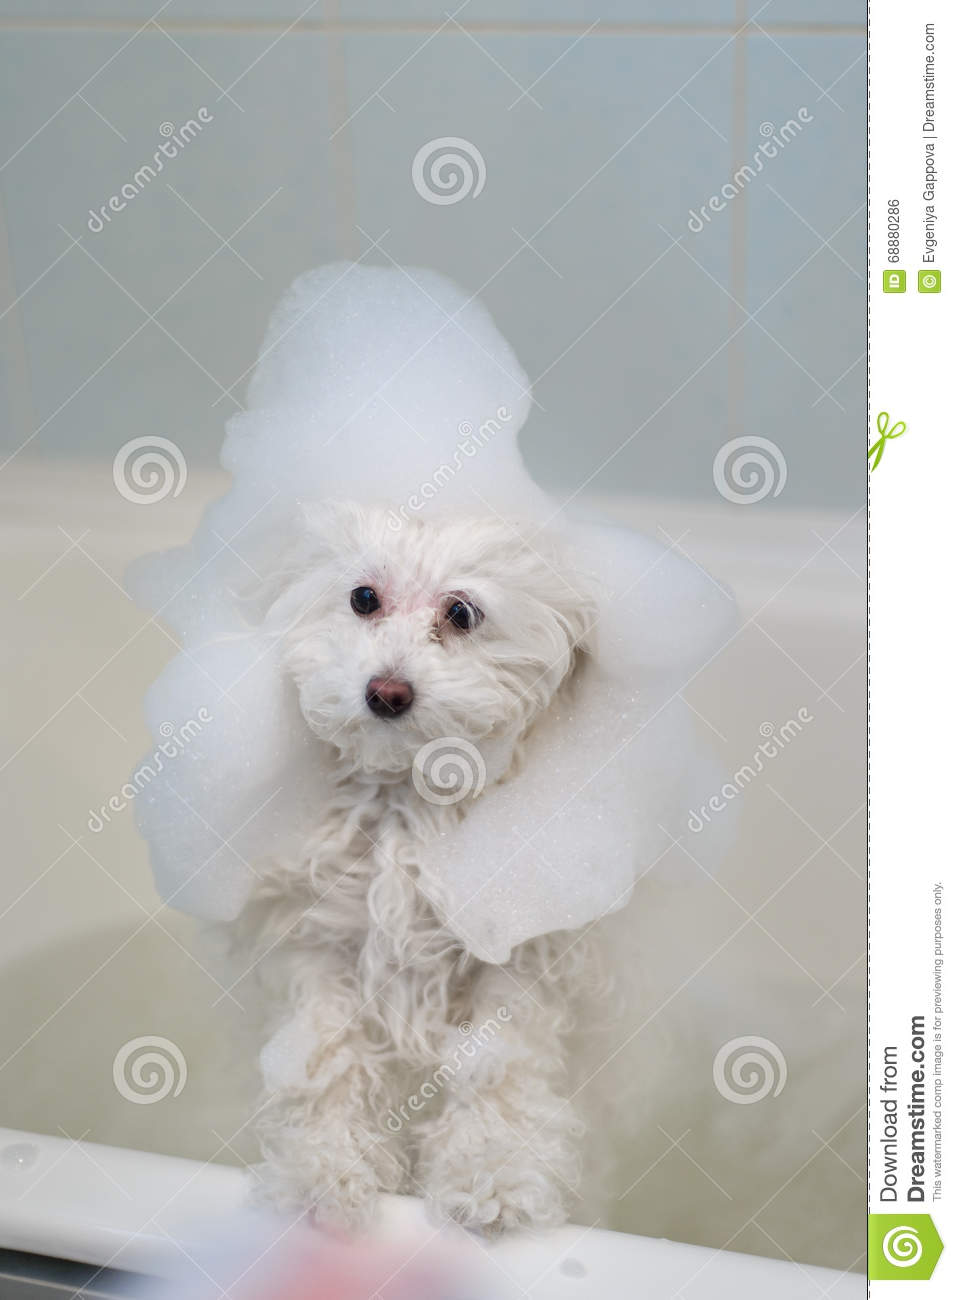 Dog In The Bathroom Stock Photo Image 68880286